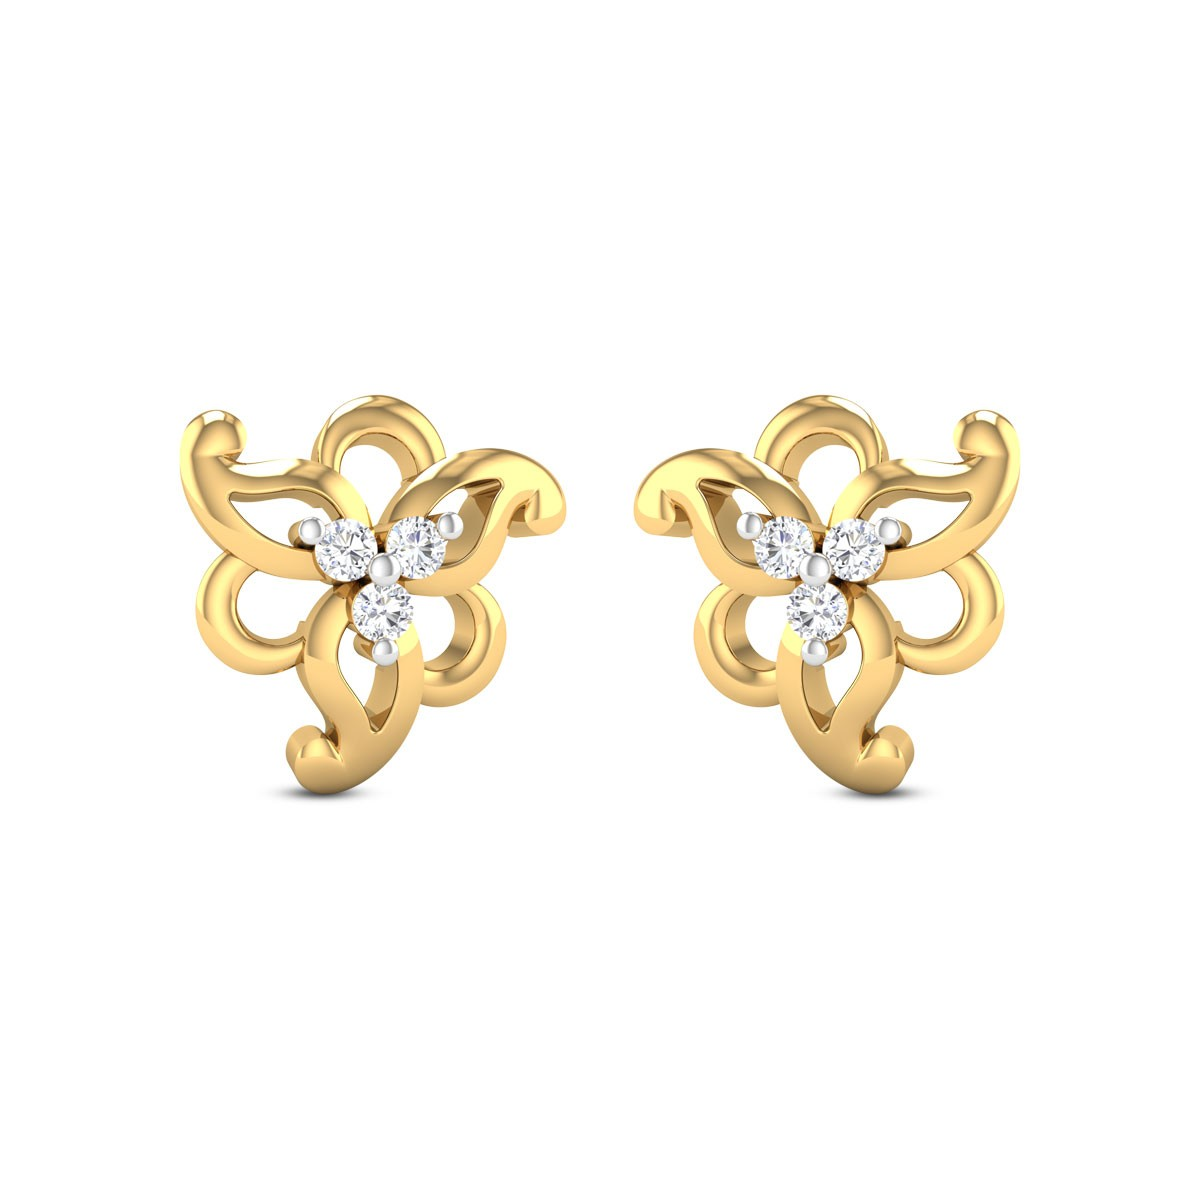 Zaira Diamond Earrings